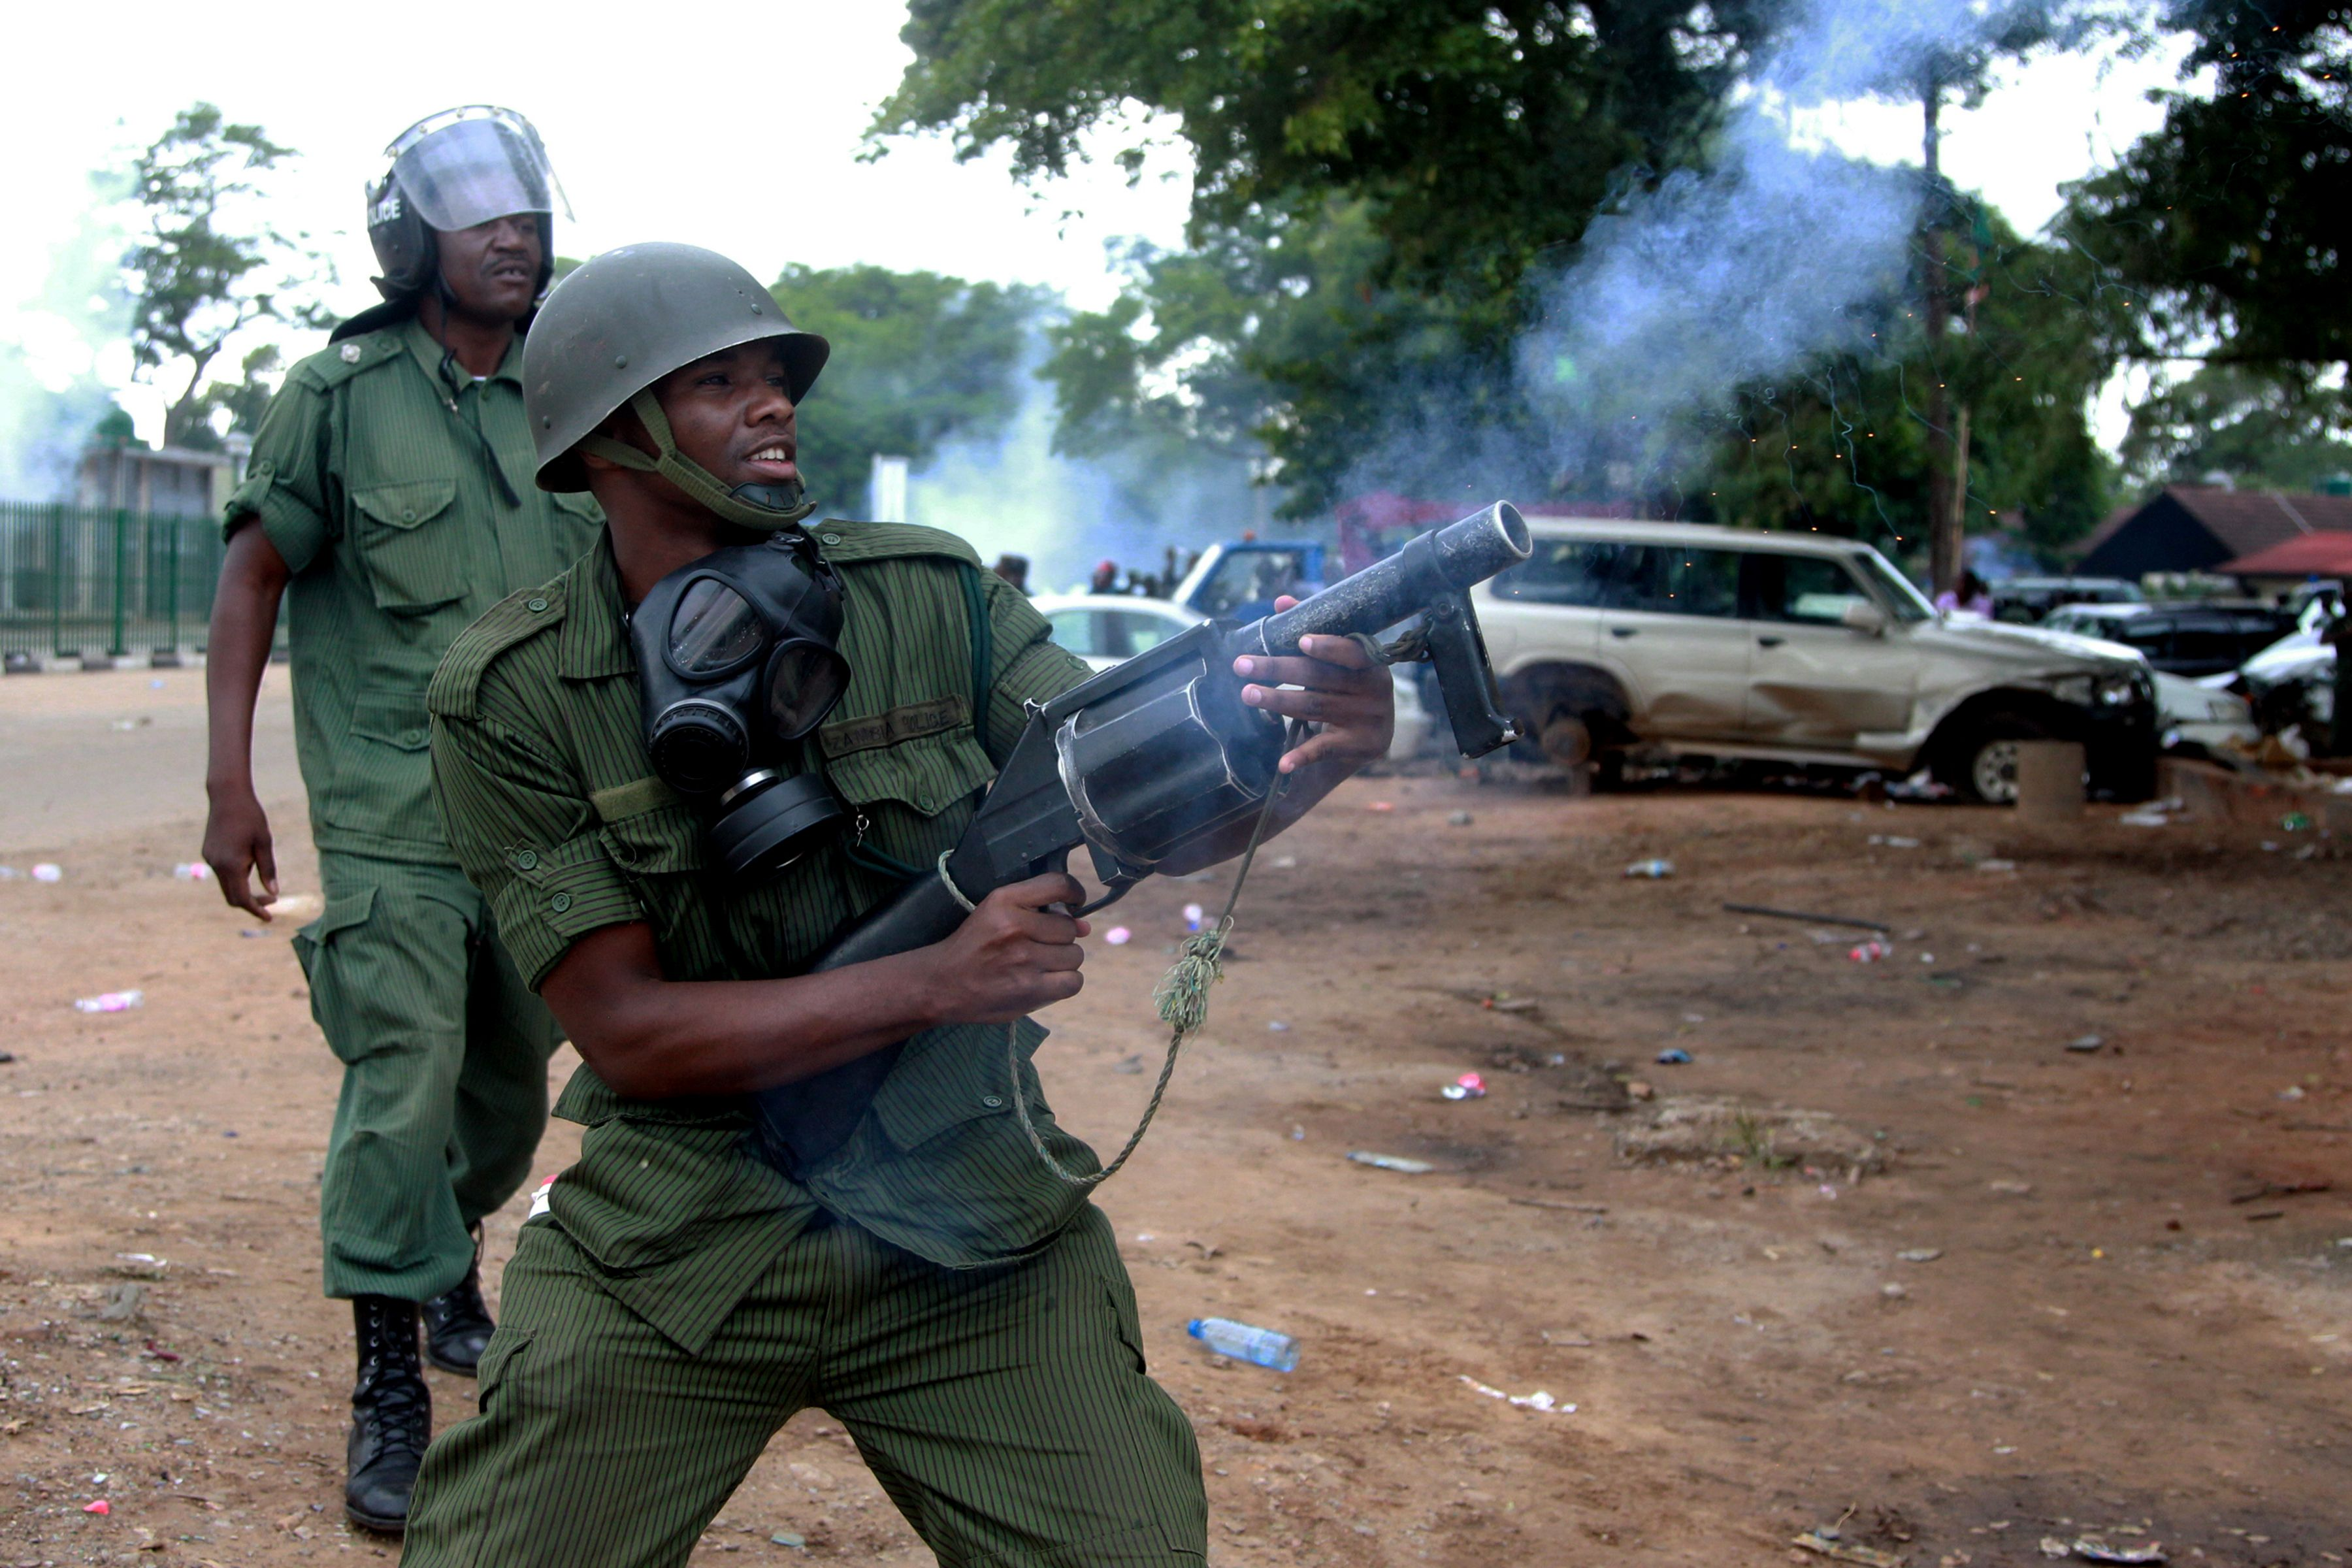 A Zambian police officer fires tear gas to supporters of the opposition United Party for National Development (UPND) outside the Woodlands Police Station in Lusaka on March 2, 2016. The supporters turned to show solidarity to their party vice-president Geofrey Mwamba who has since been arrested and charged with unlawful drilling. / AFP / Dawood SALIM        (Photo credit should read DAWOOD SALIM/AFP/Getty Images)